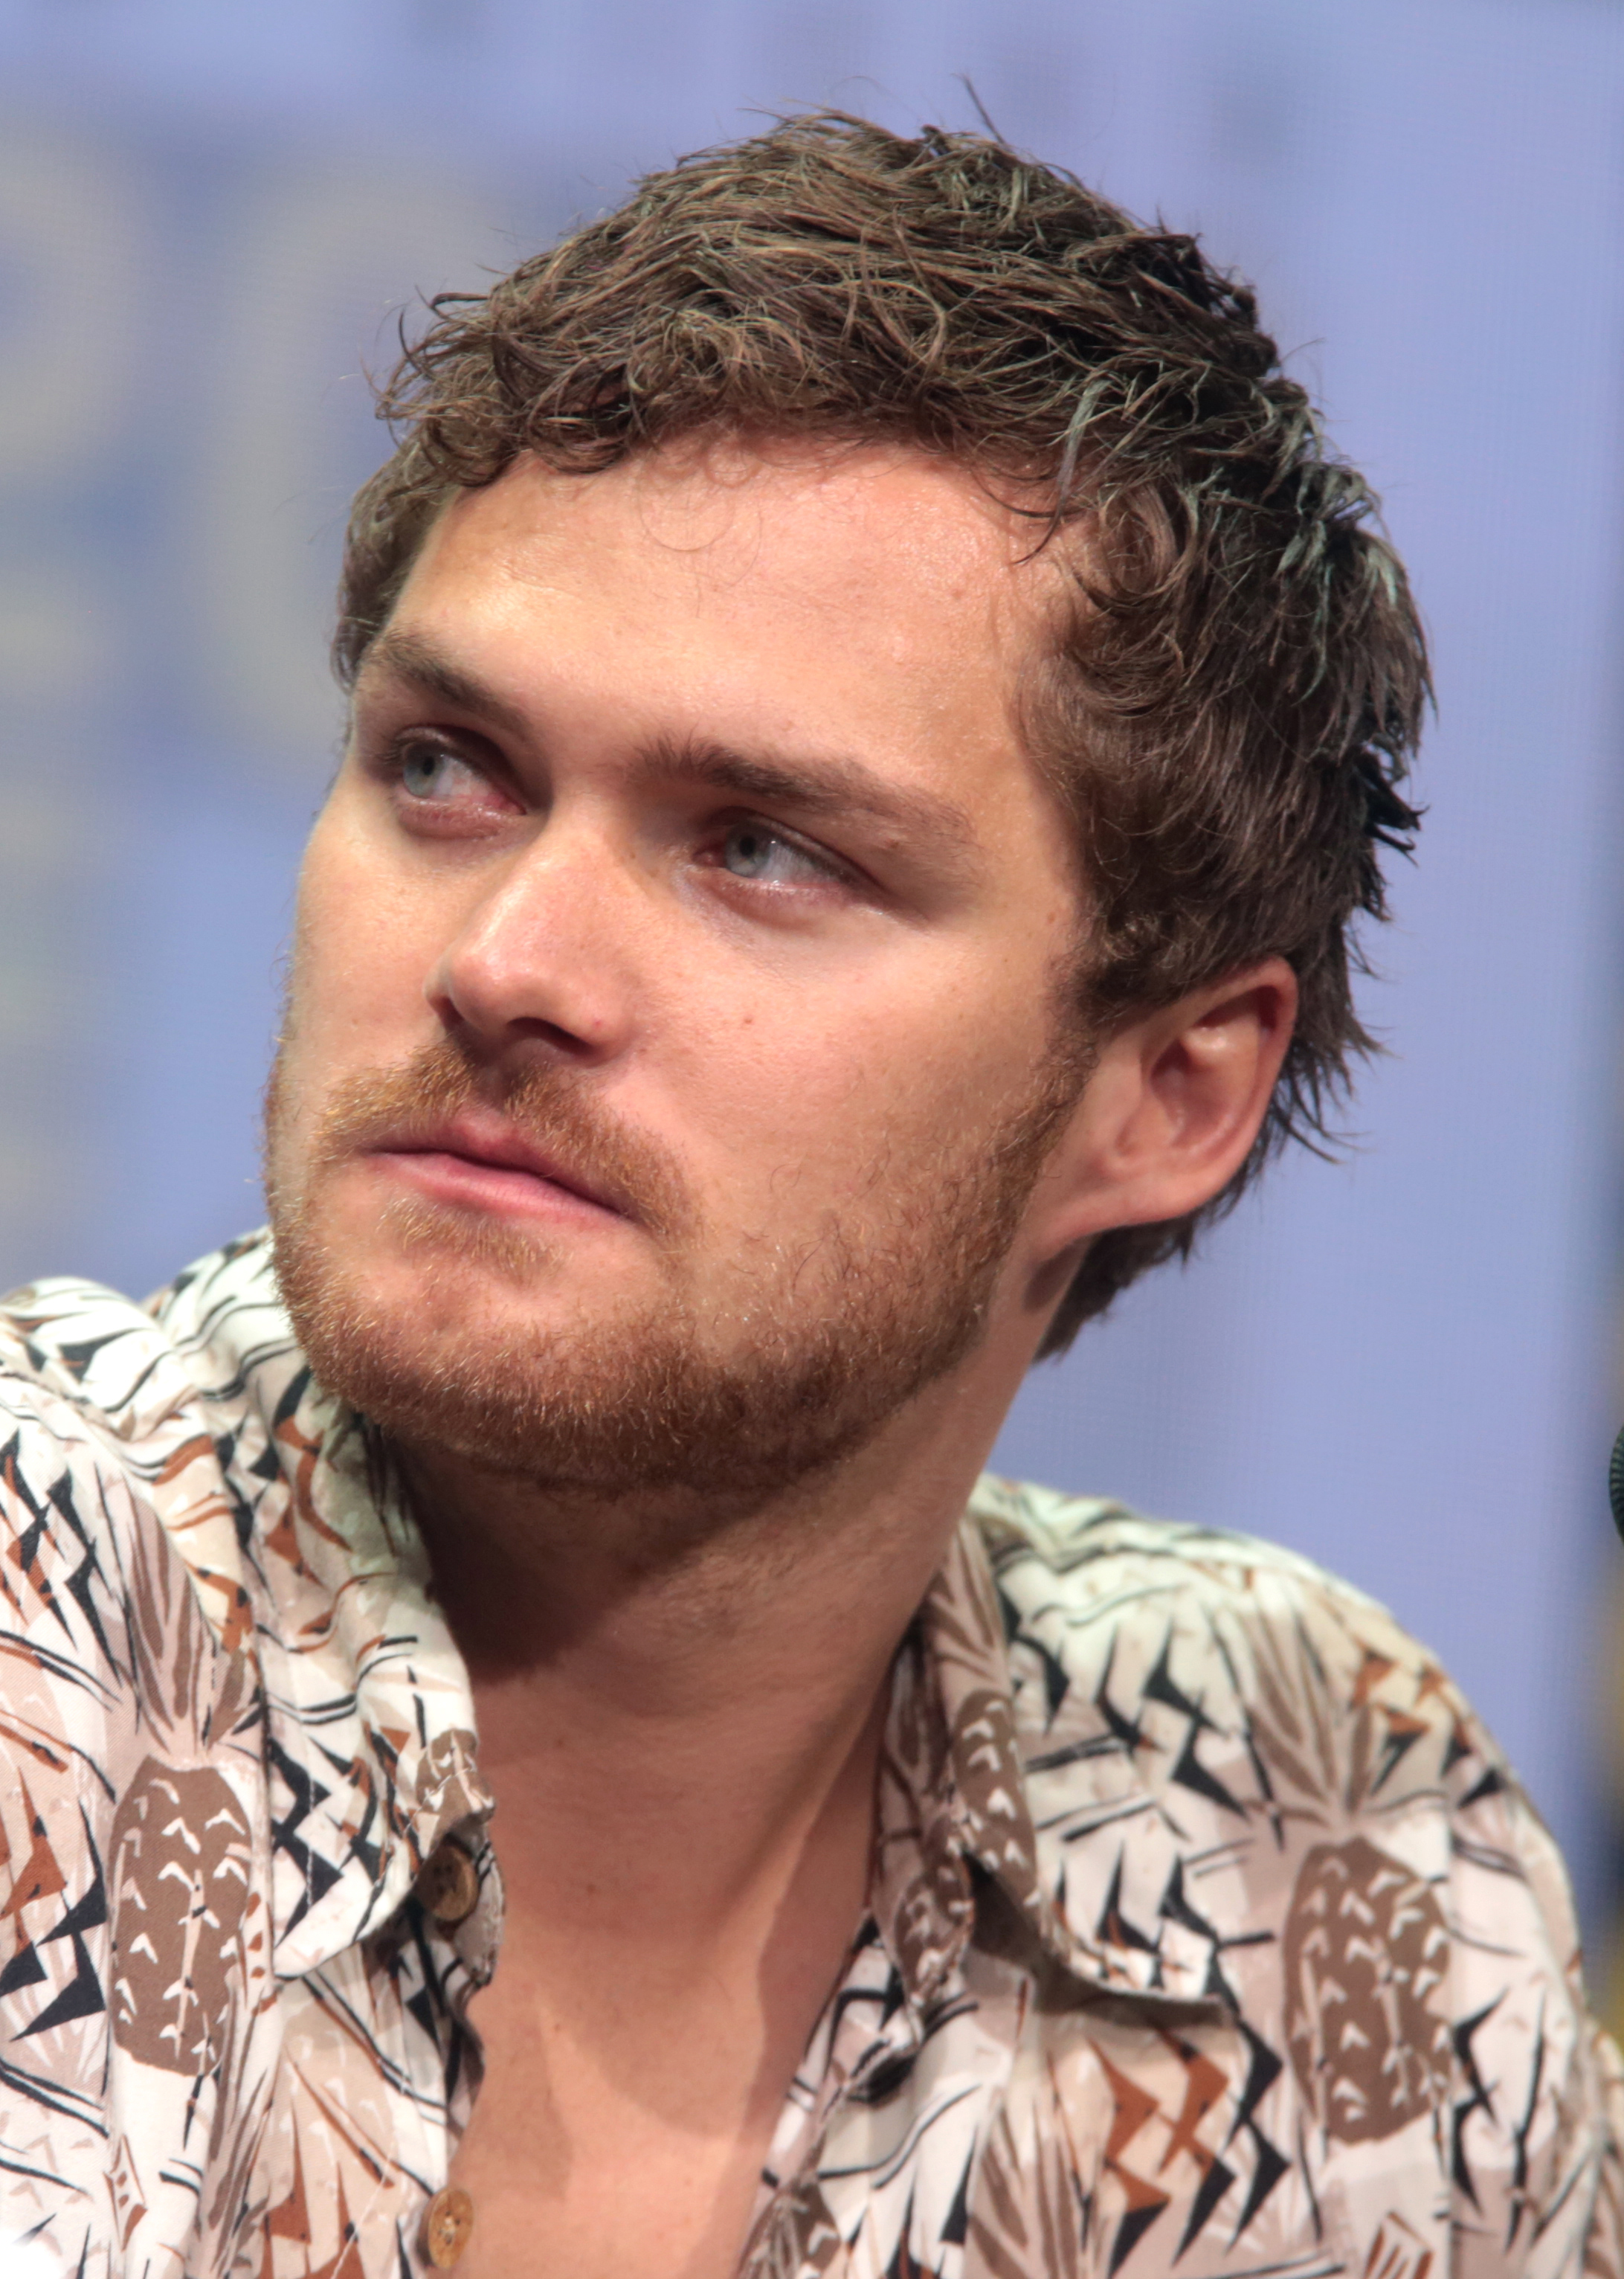 The 30-year old son of father (?) and mother(?) Finn Jones in 2018 photo. Finn Jones earned a  million dollar salary - leaving the net worth at 3 million in 2018